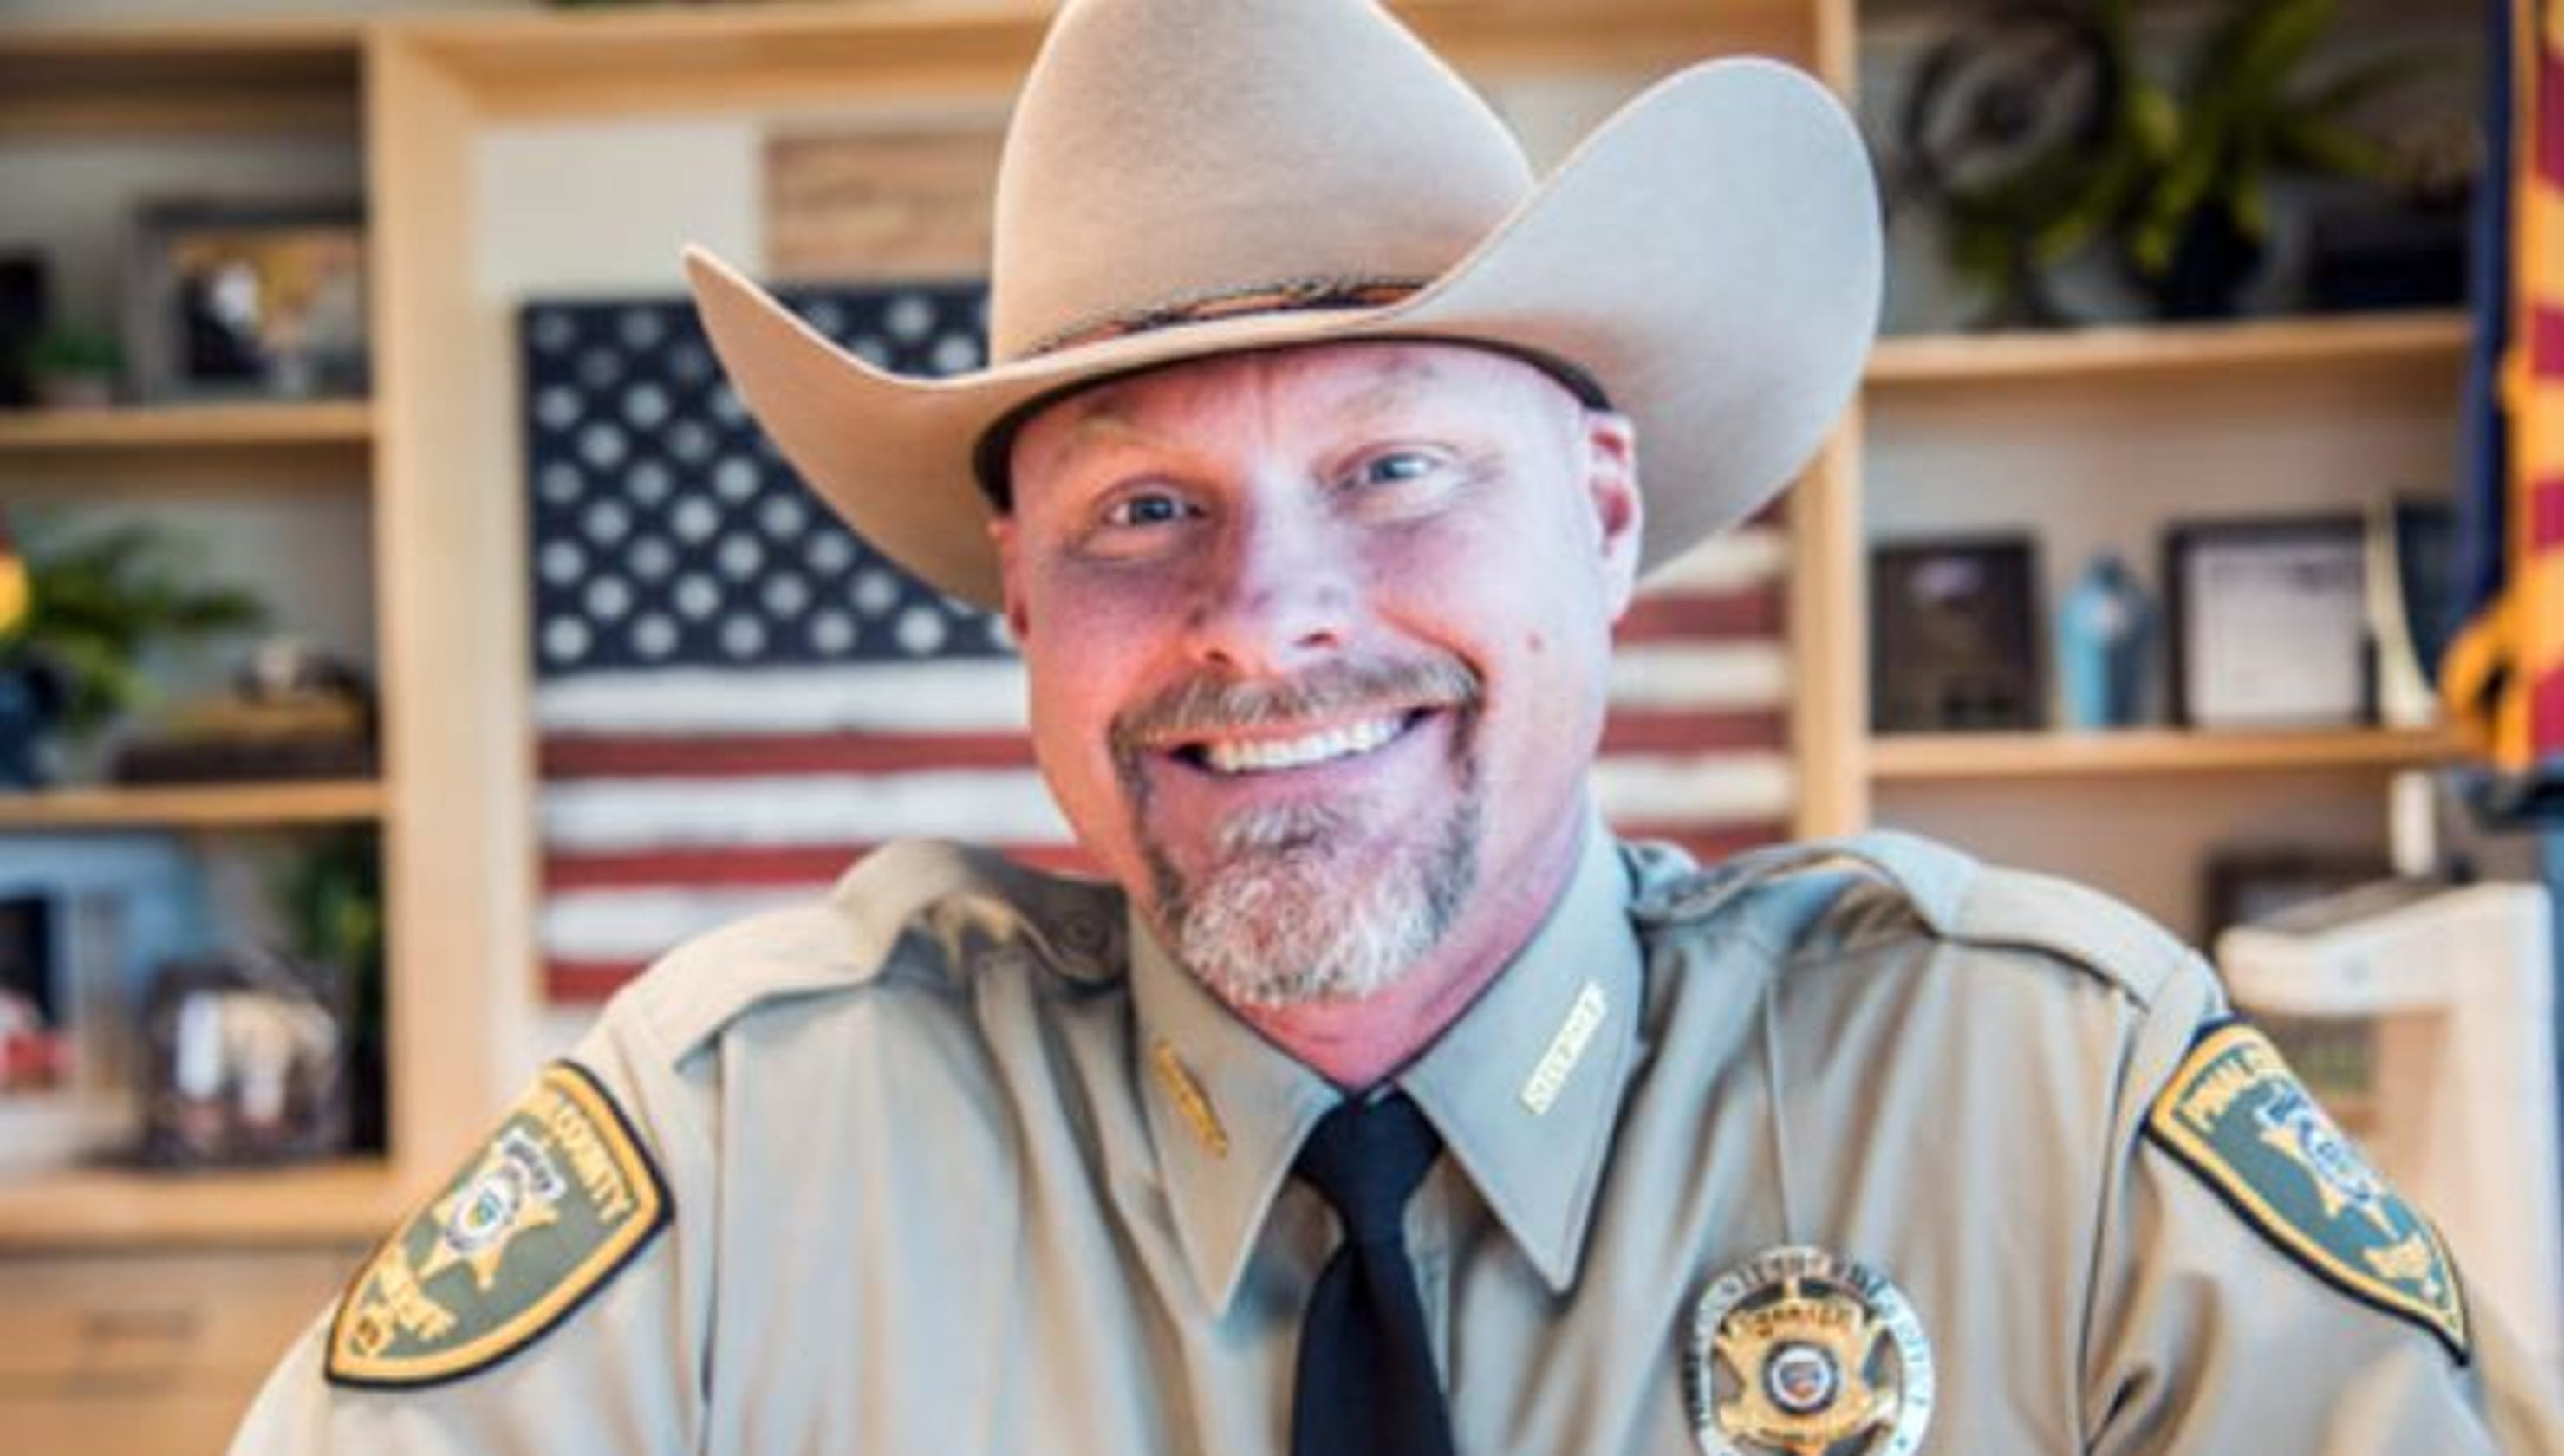 Sheriff from 'Live PD' raffling cowboy hat for Greene County